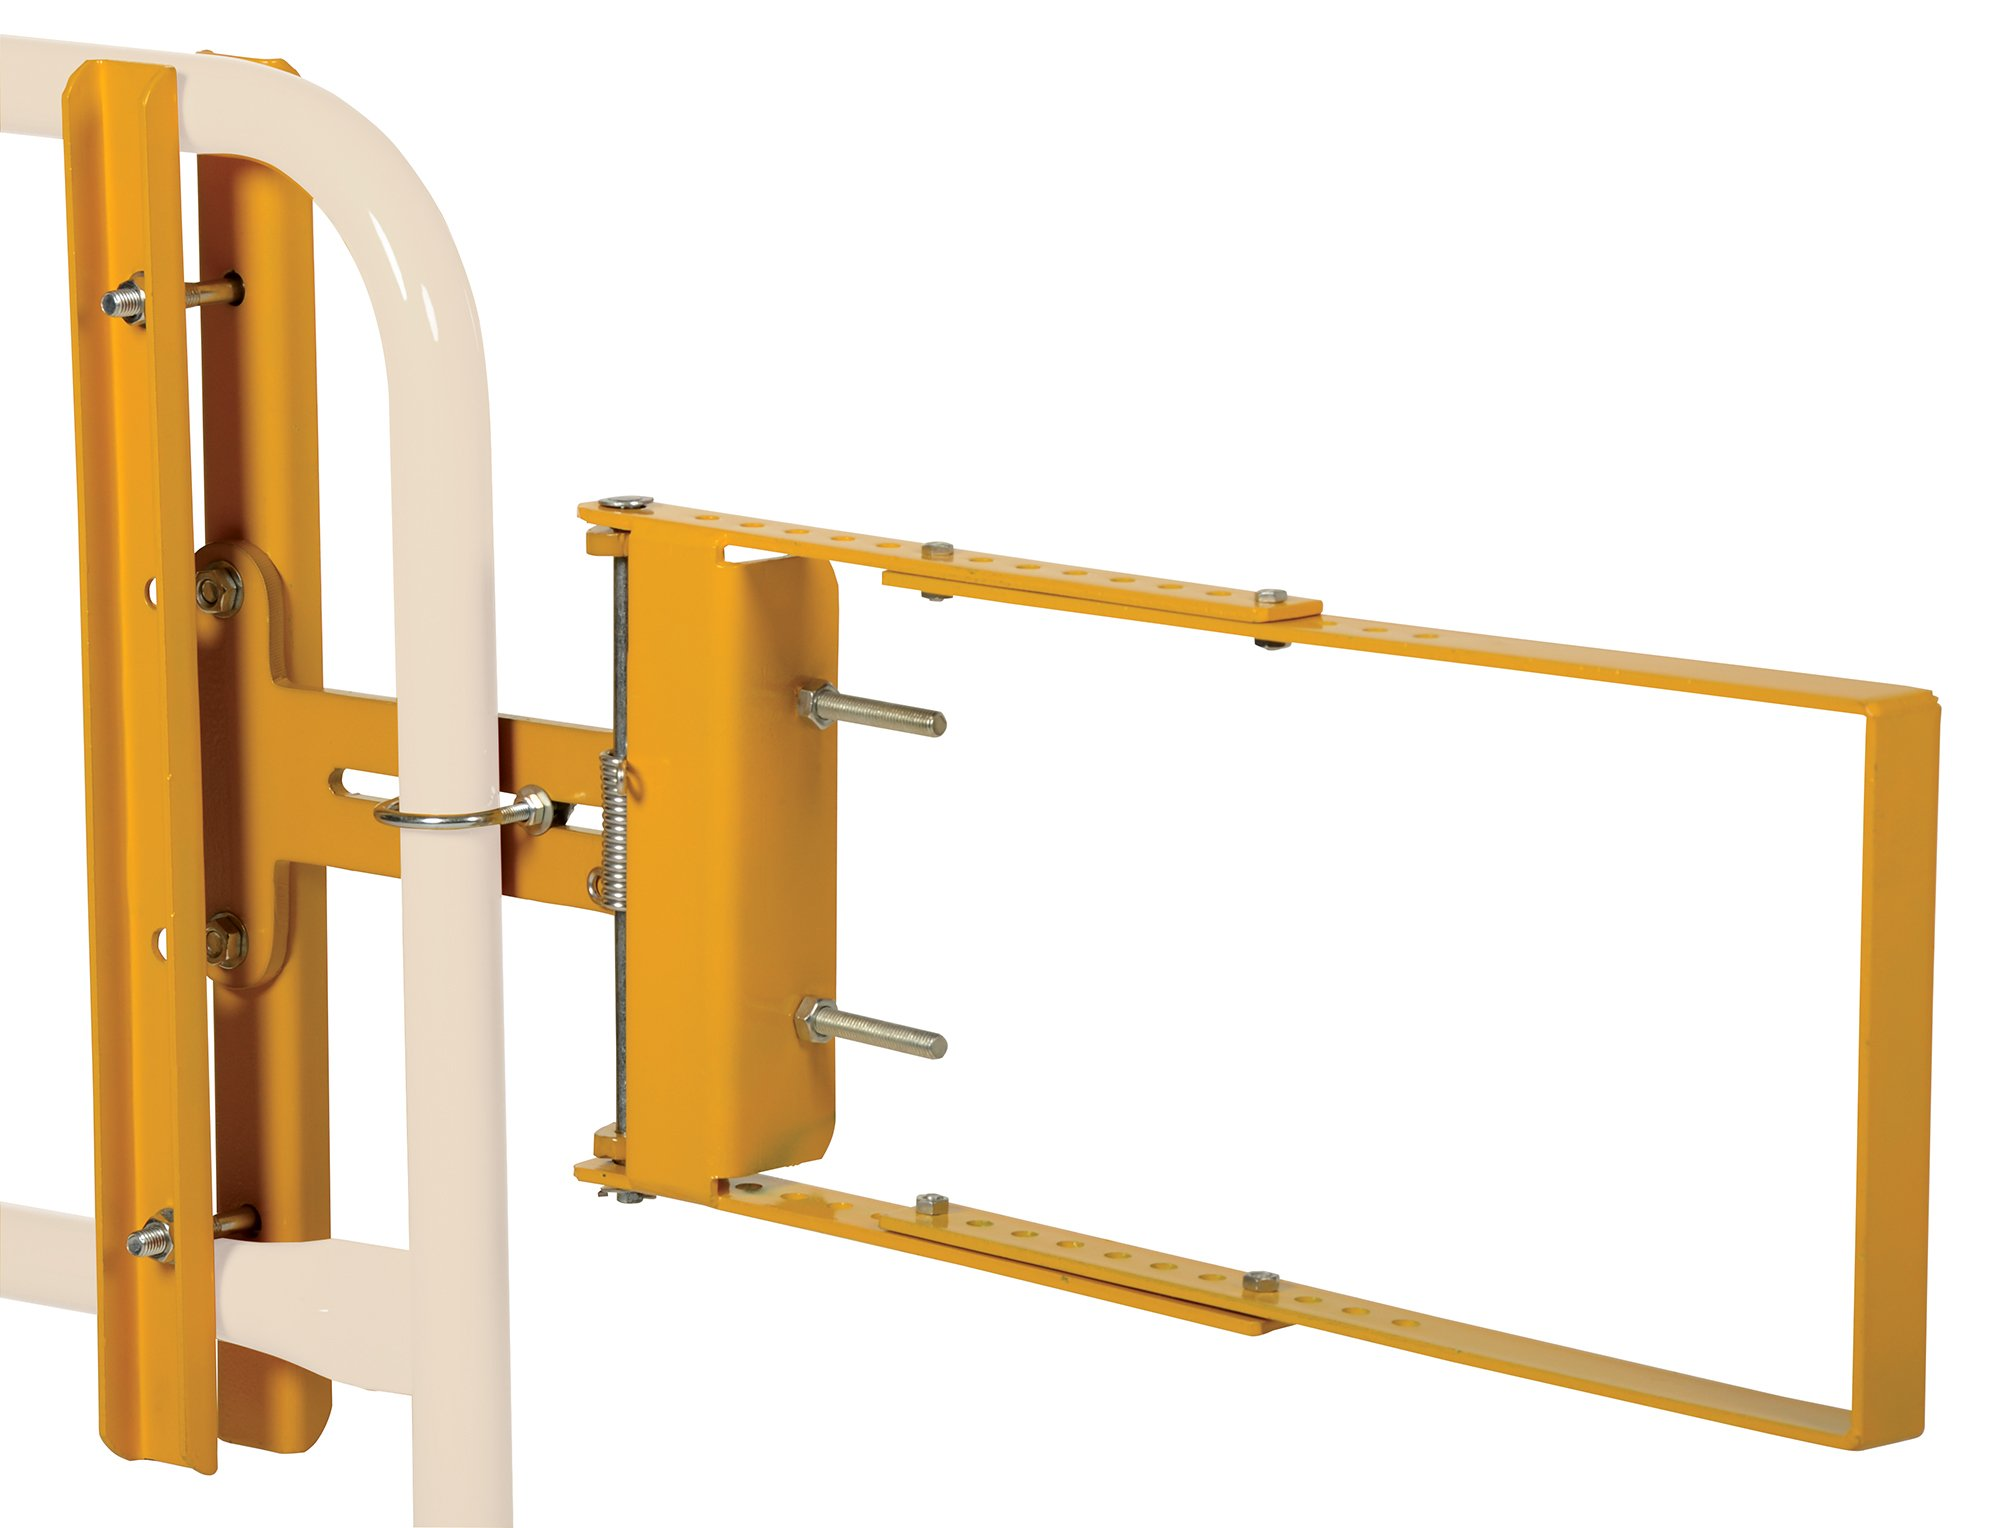 Vestil SPG-40-Y Self-Closing Steel Gate with Yellow Powder Coat Finish, 24'' - 40'' Opening Width, 12'' Height